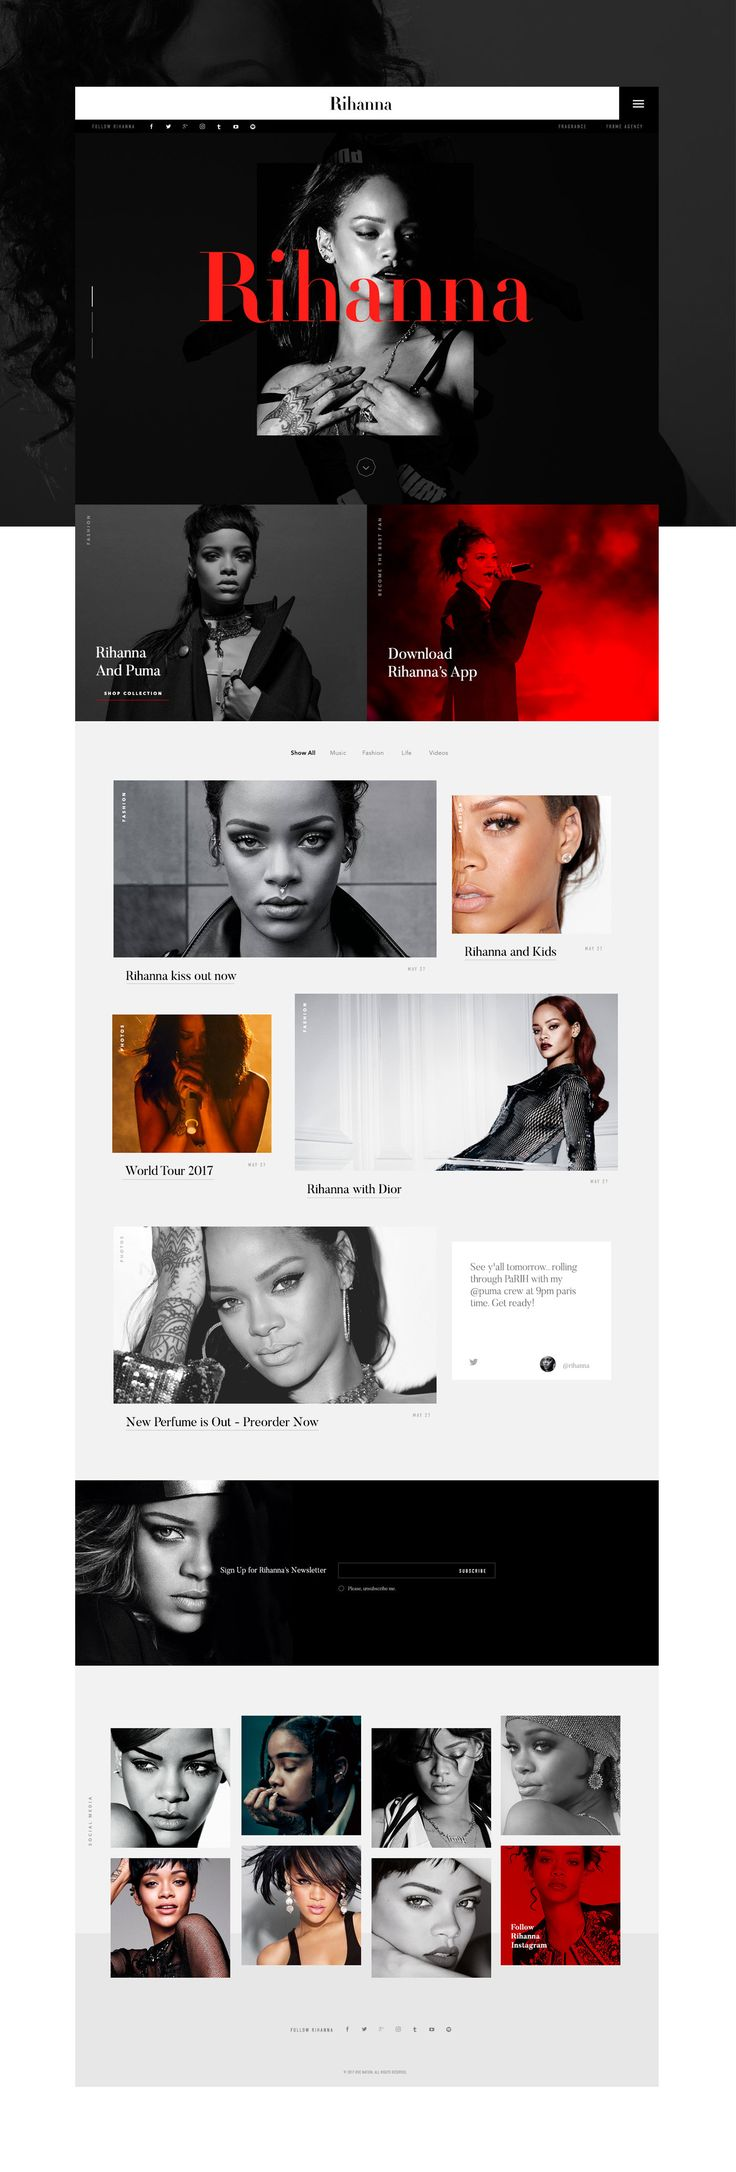 Rihanna - Official website on Behance